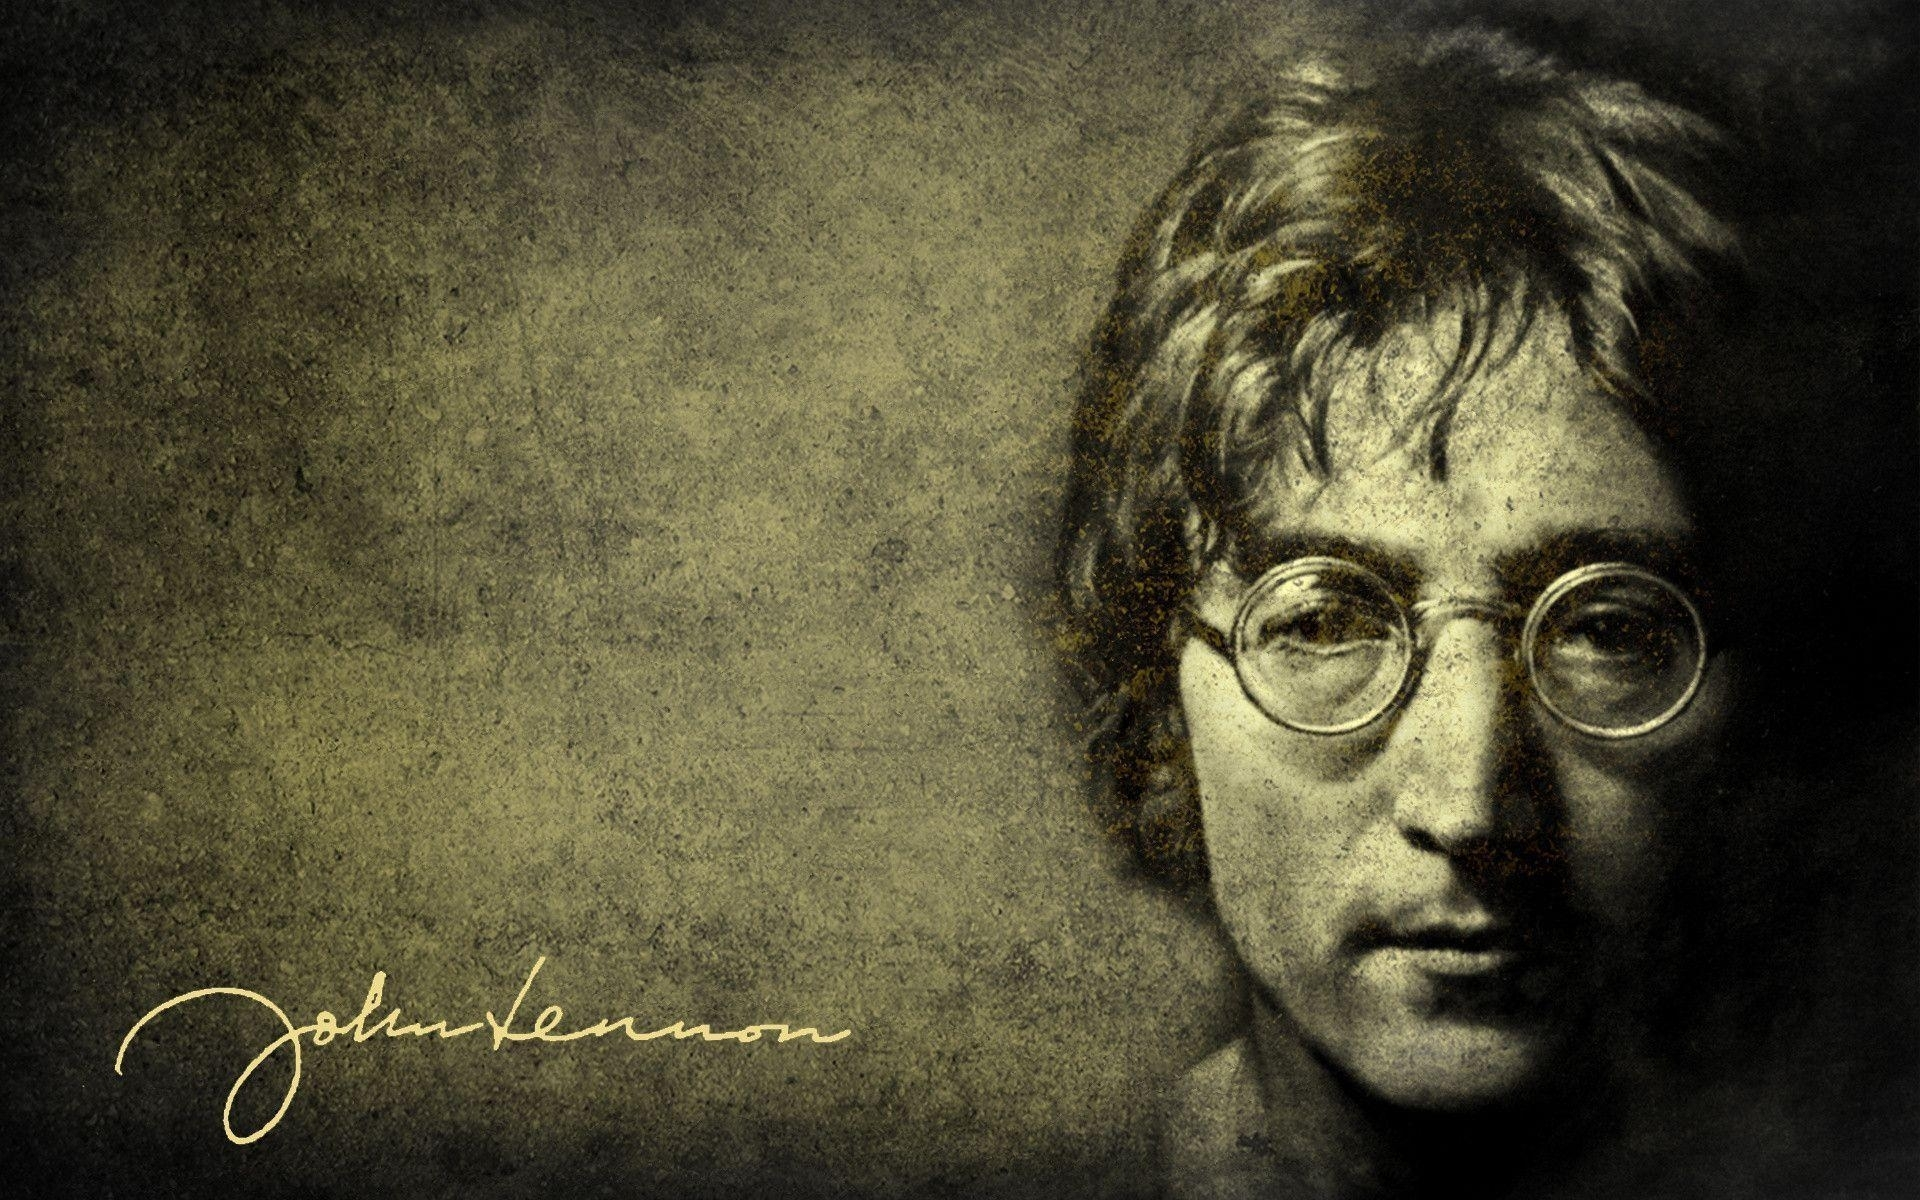 john lennon wallpapers - wallpaper cave